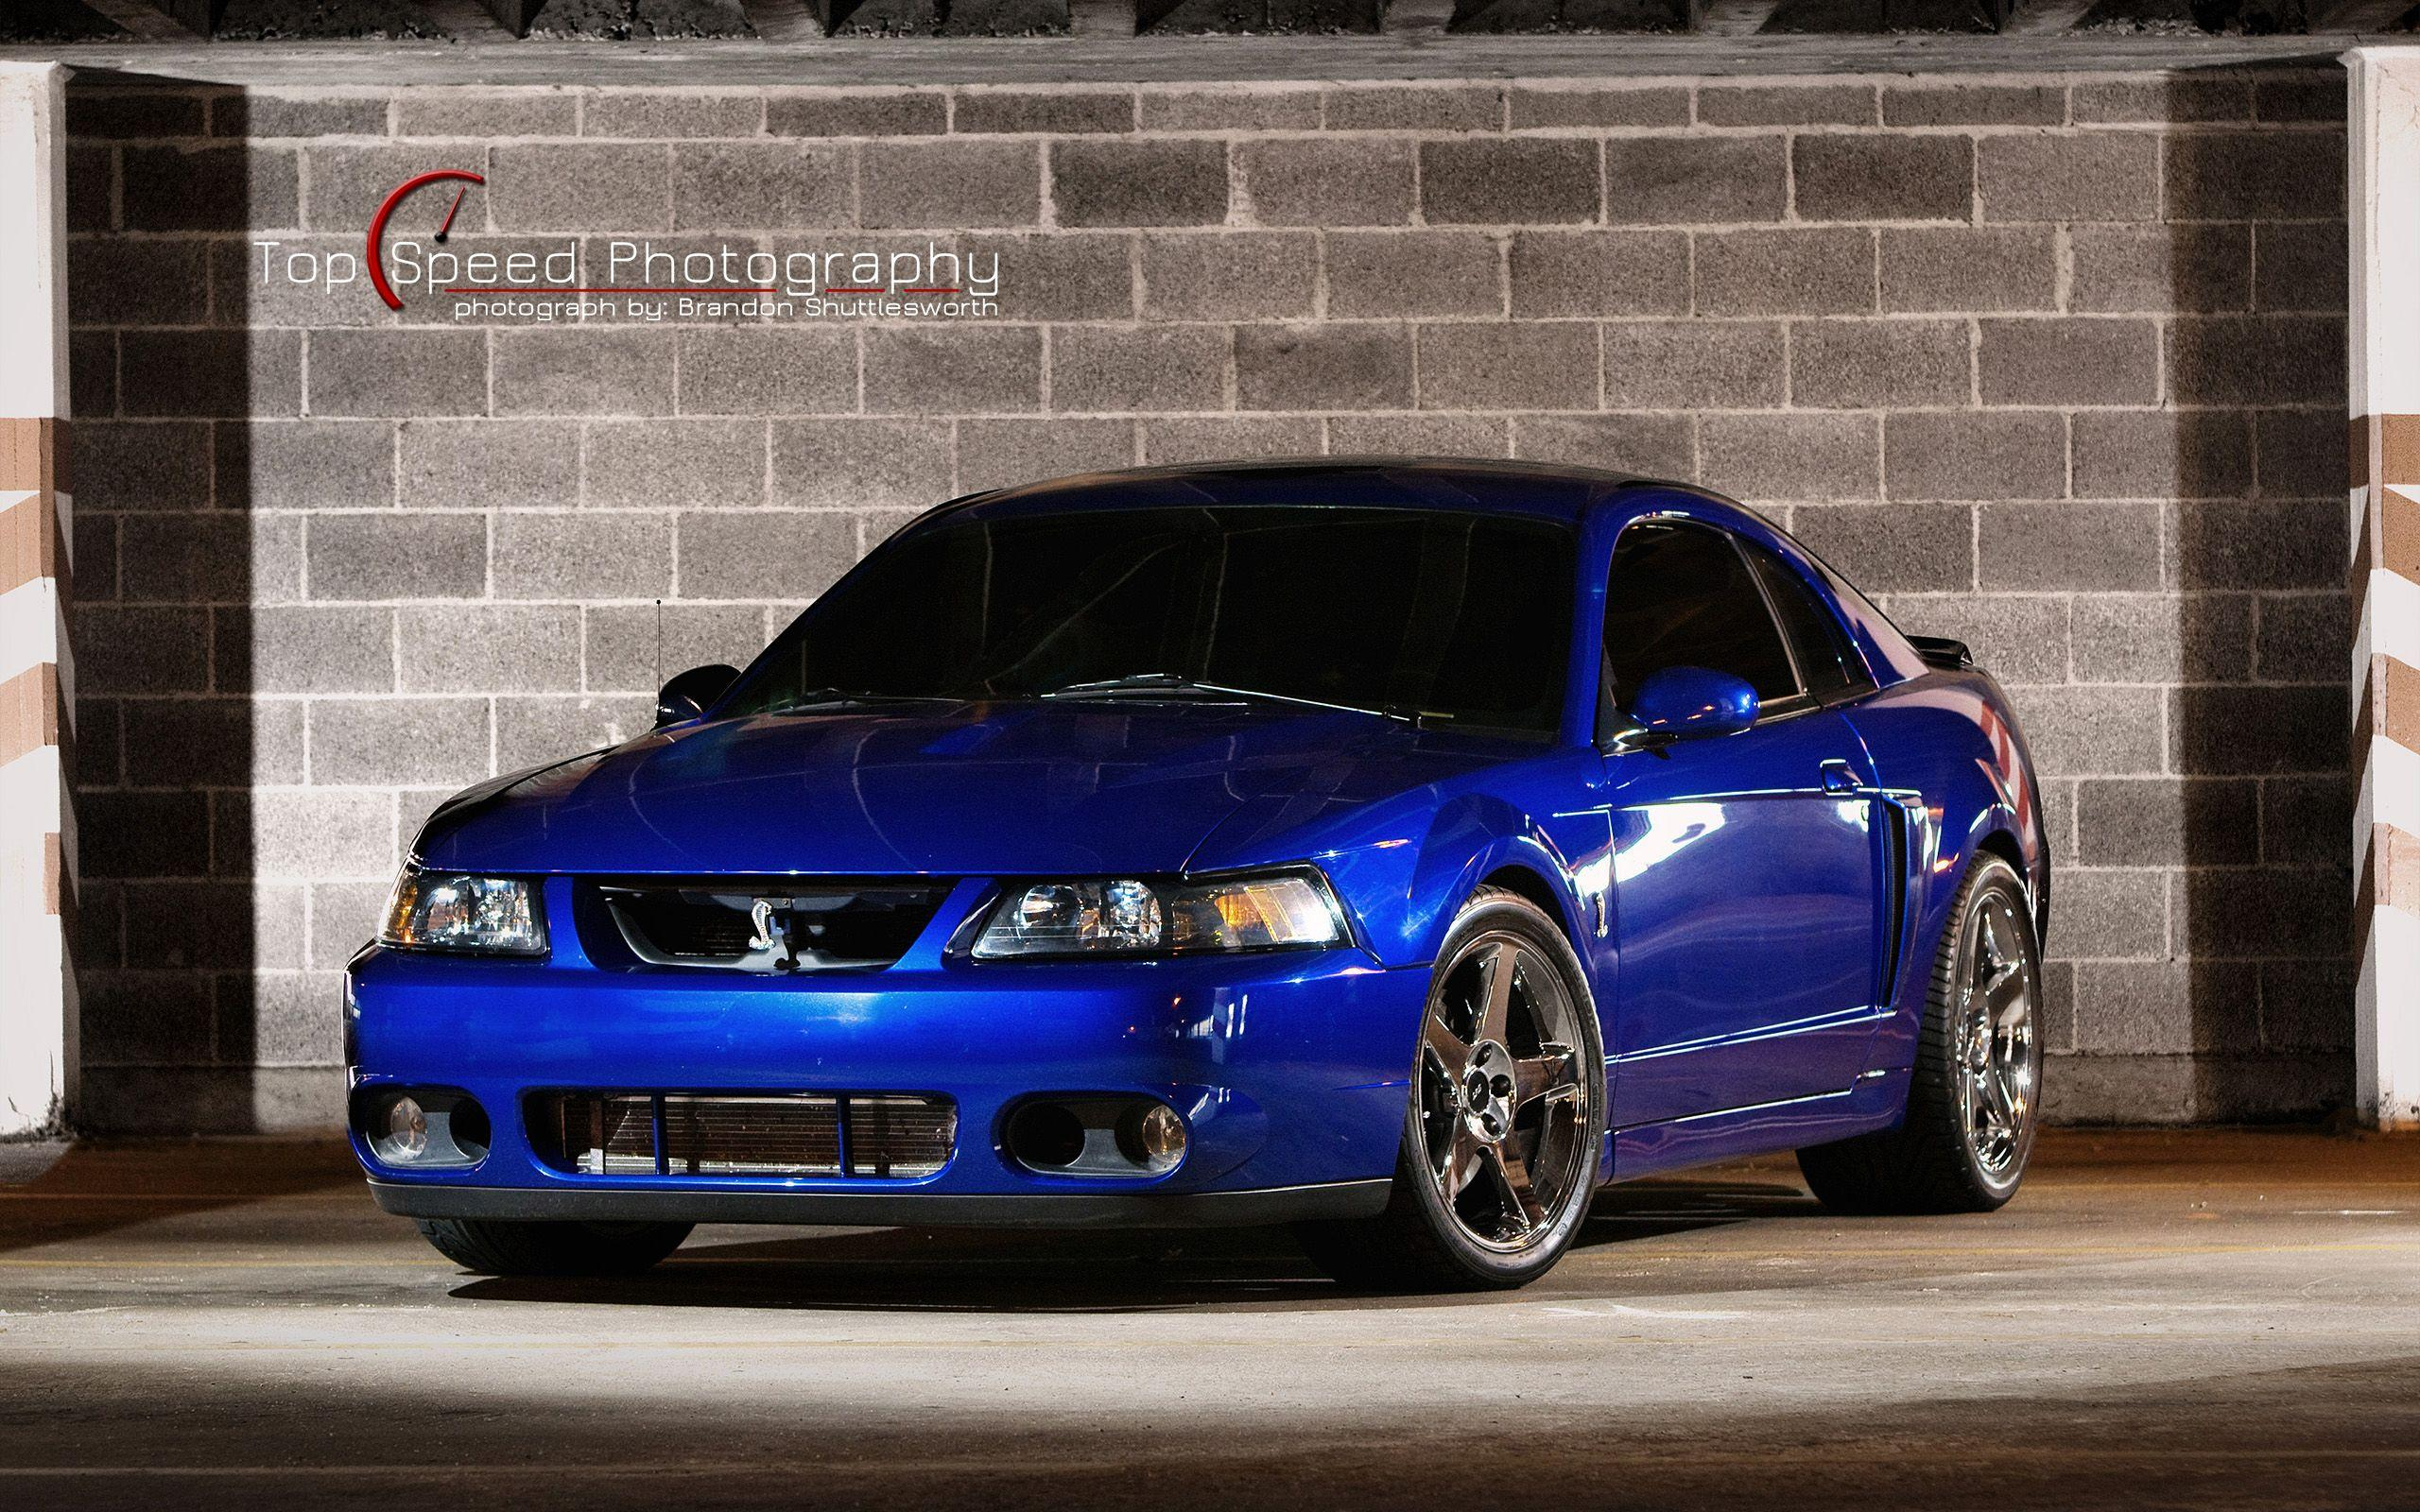 91 Mustang Gt >> 2003 Ford Mustang Cobra Terminator Wallpapers - Wallpaper Cave